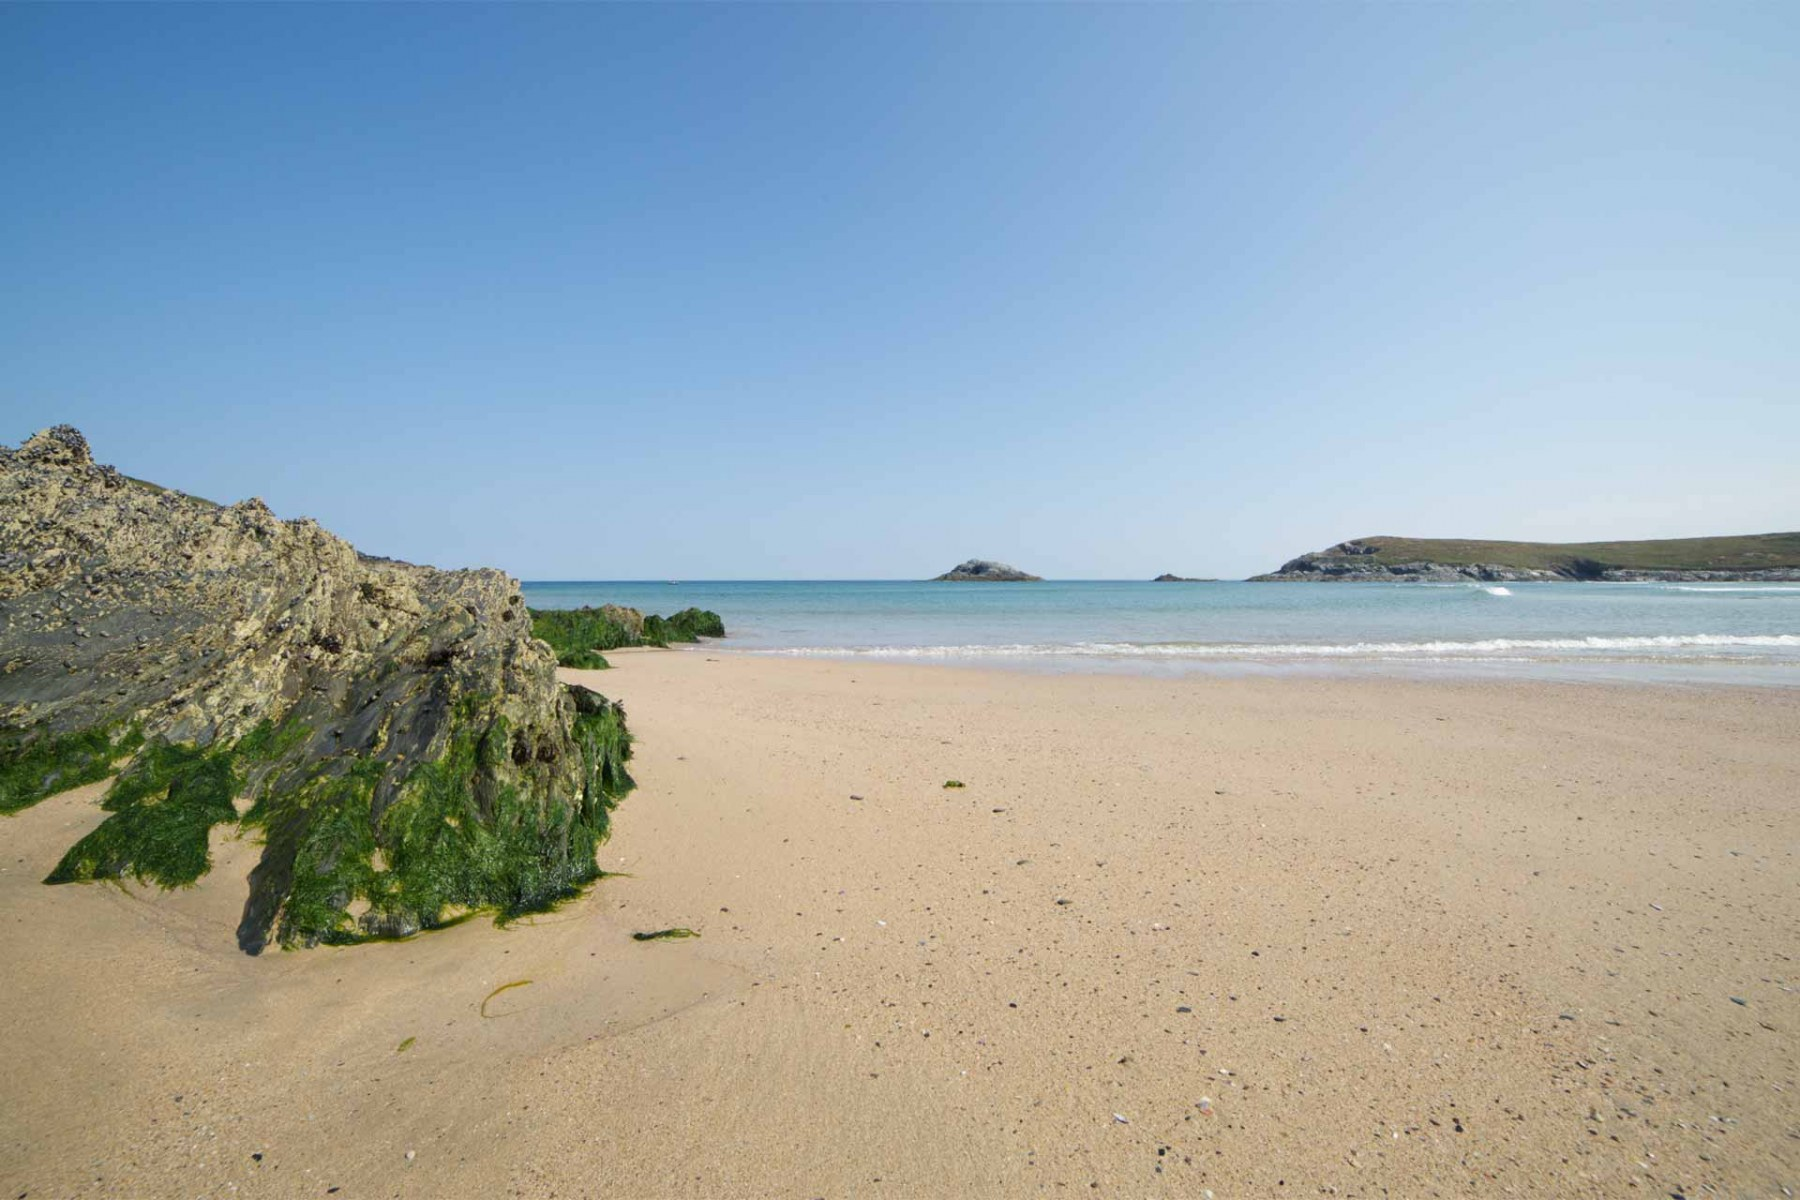 crantock-beach—nature-and-the-climate-a-chance-Idenna-Creative